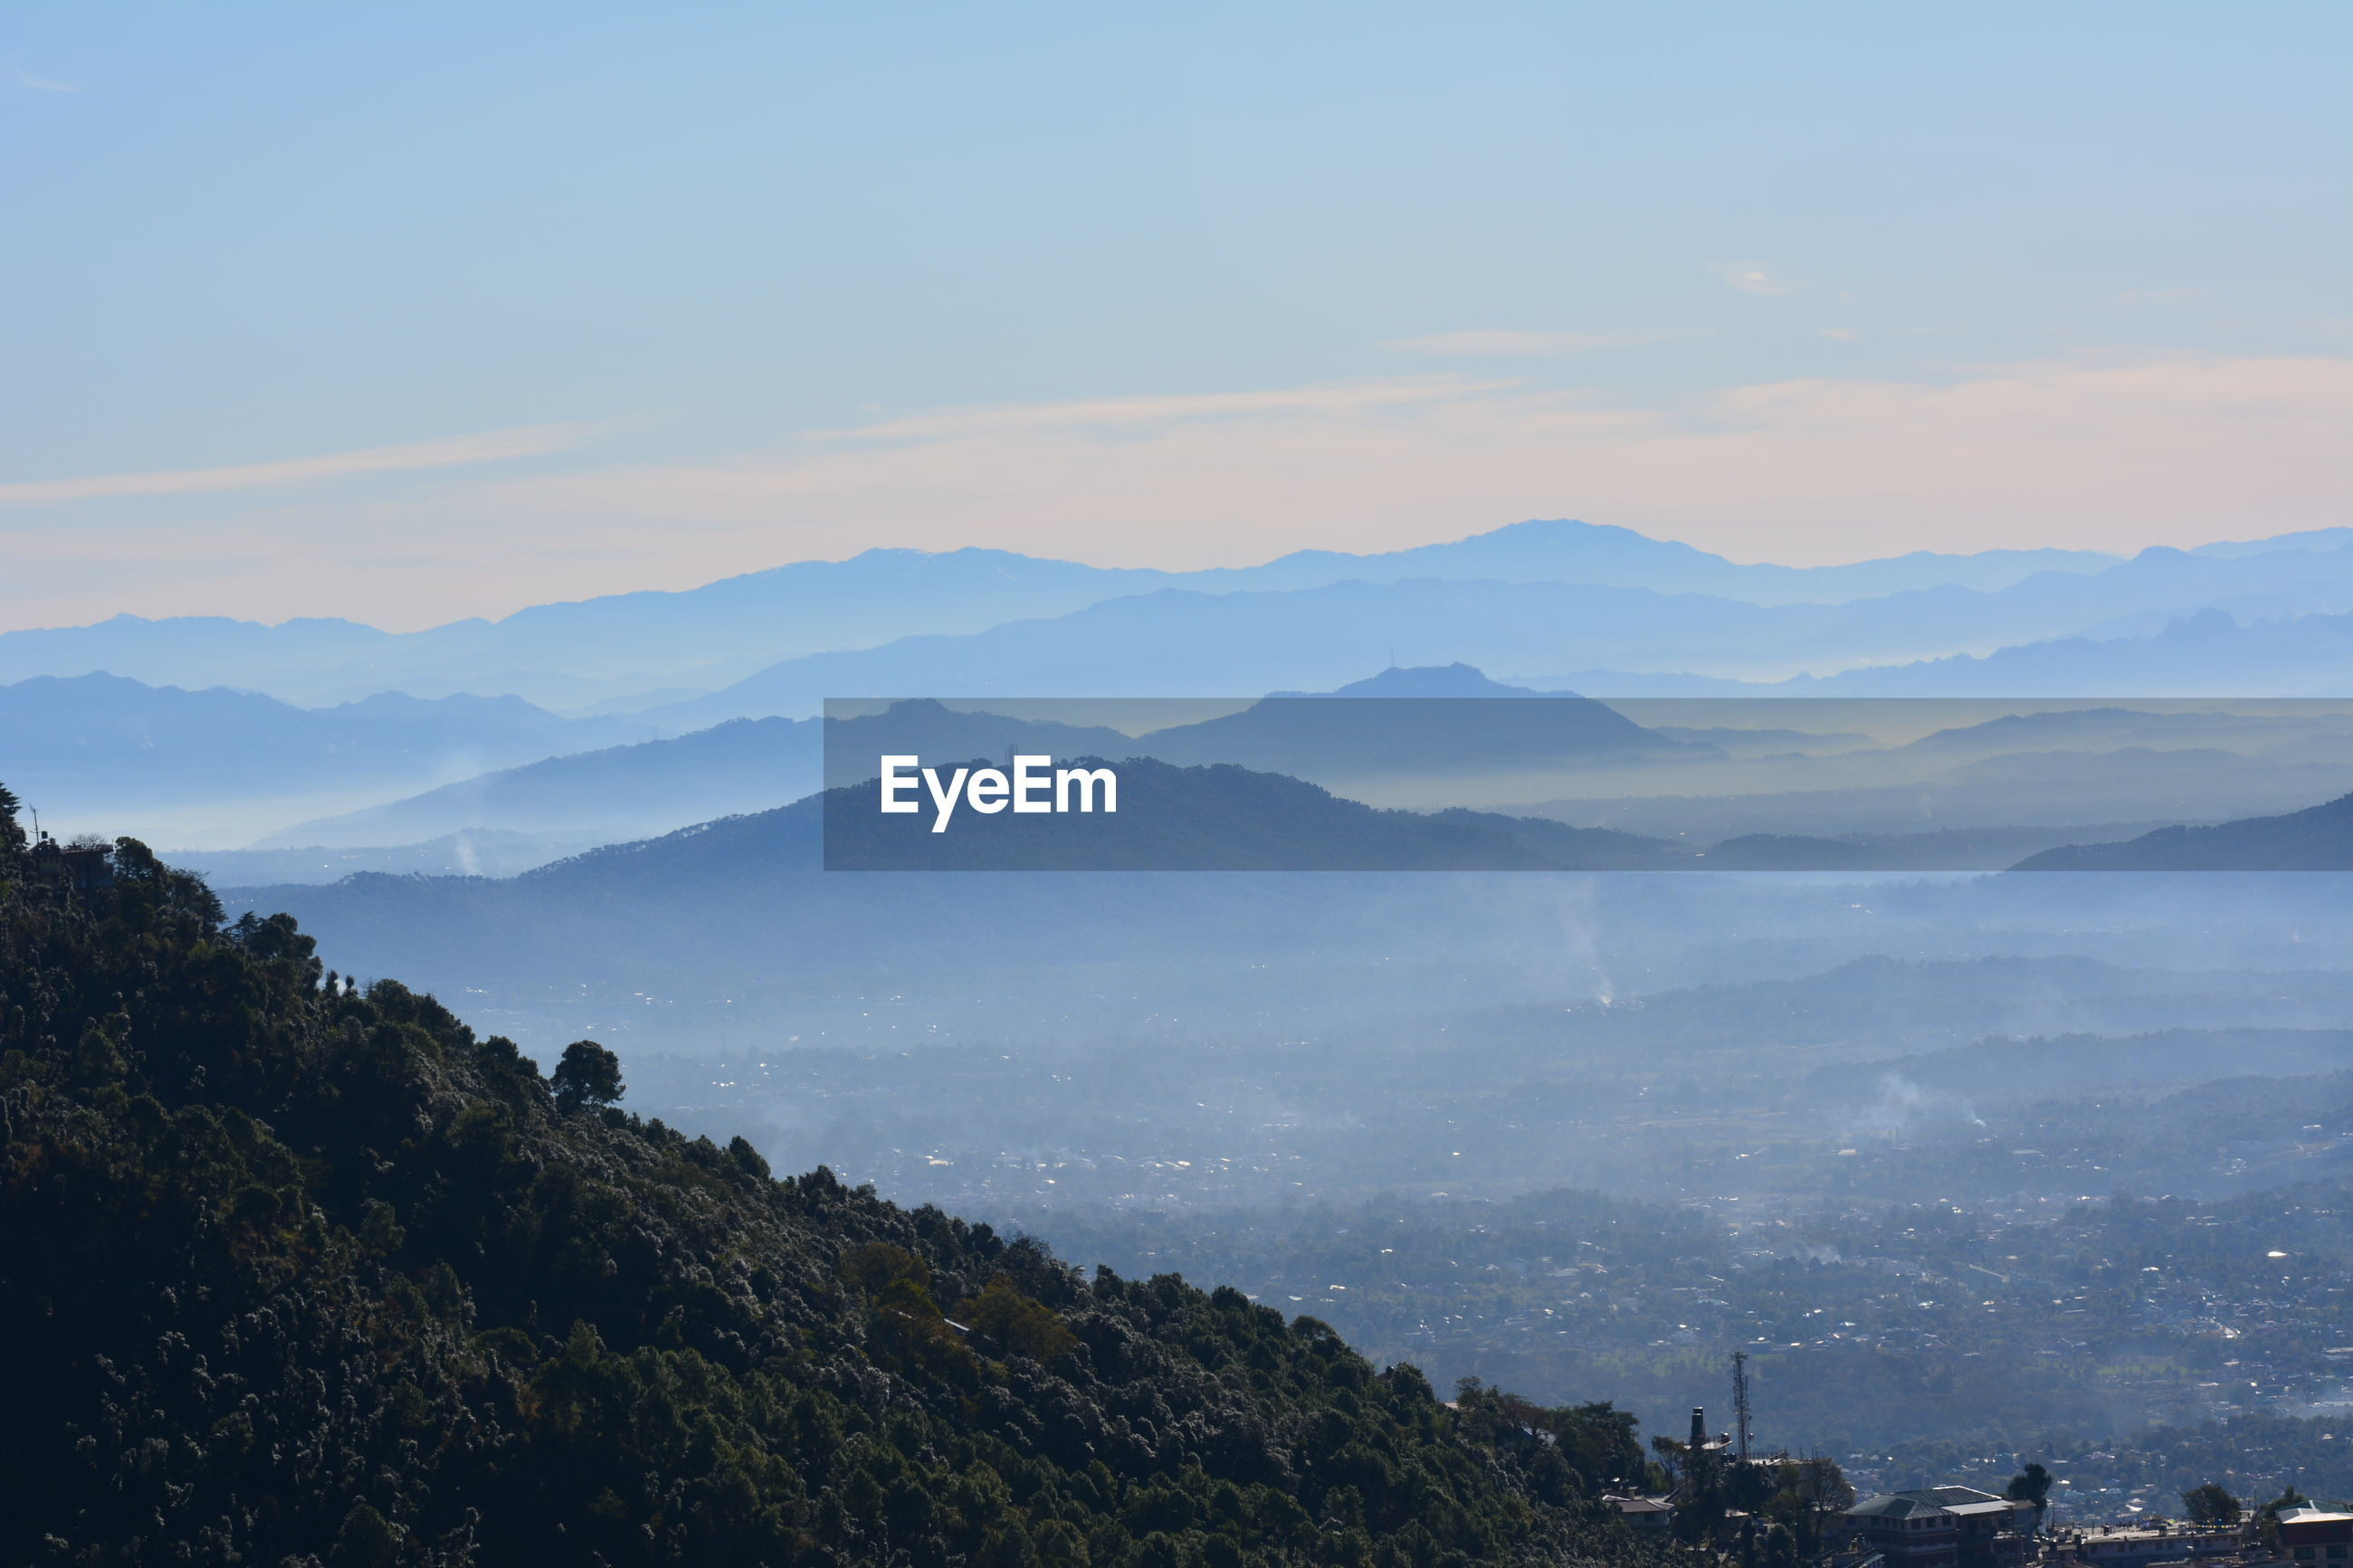 SCENIC VIEW OF MOUNTAINS AGAINST SKY IN CITY